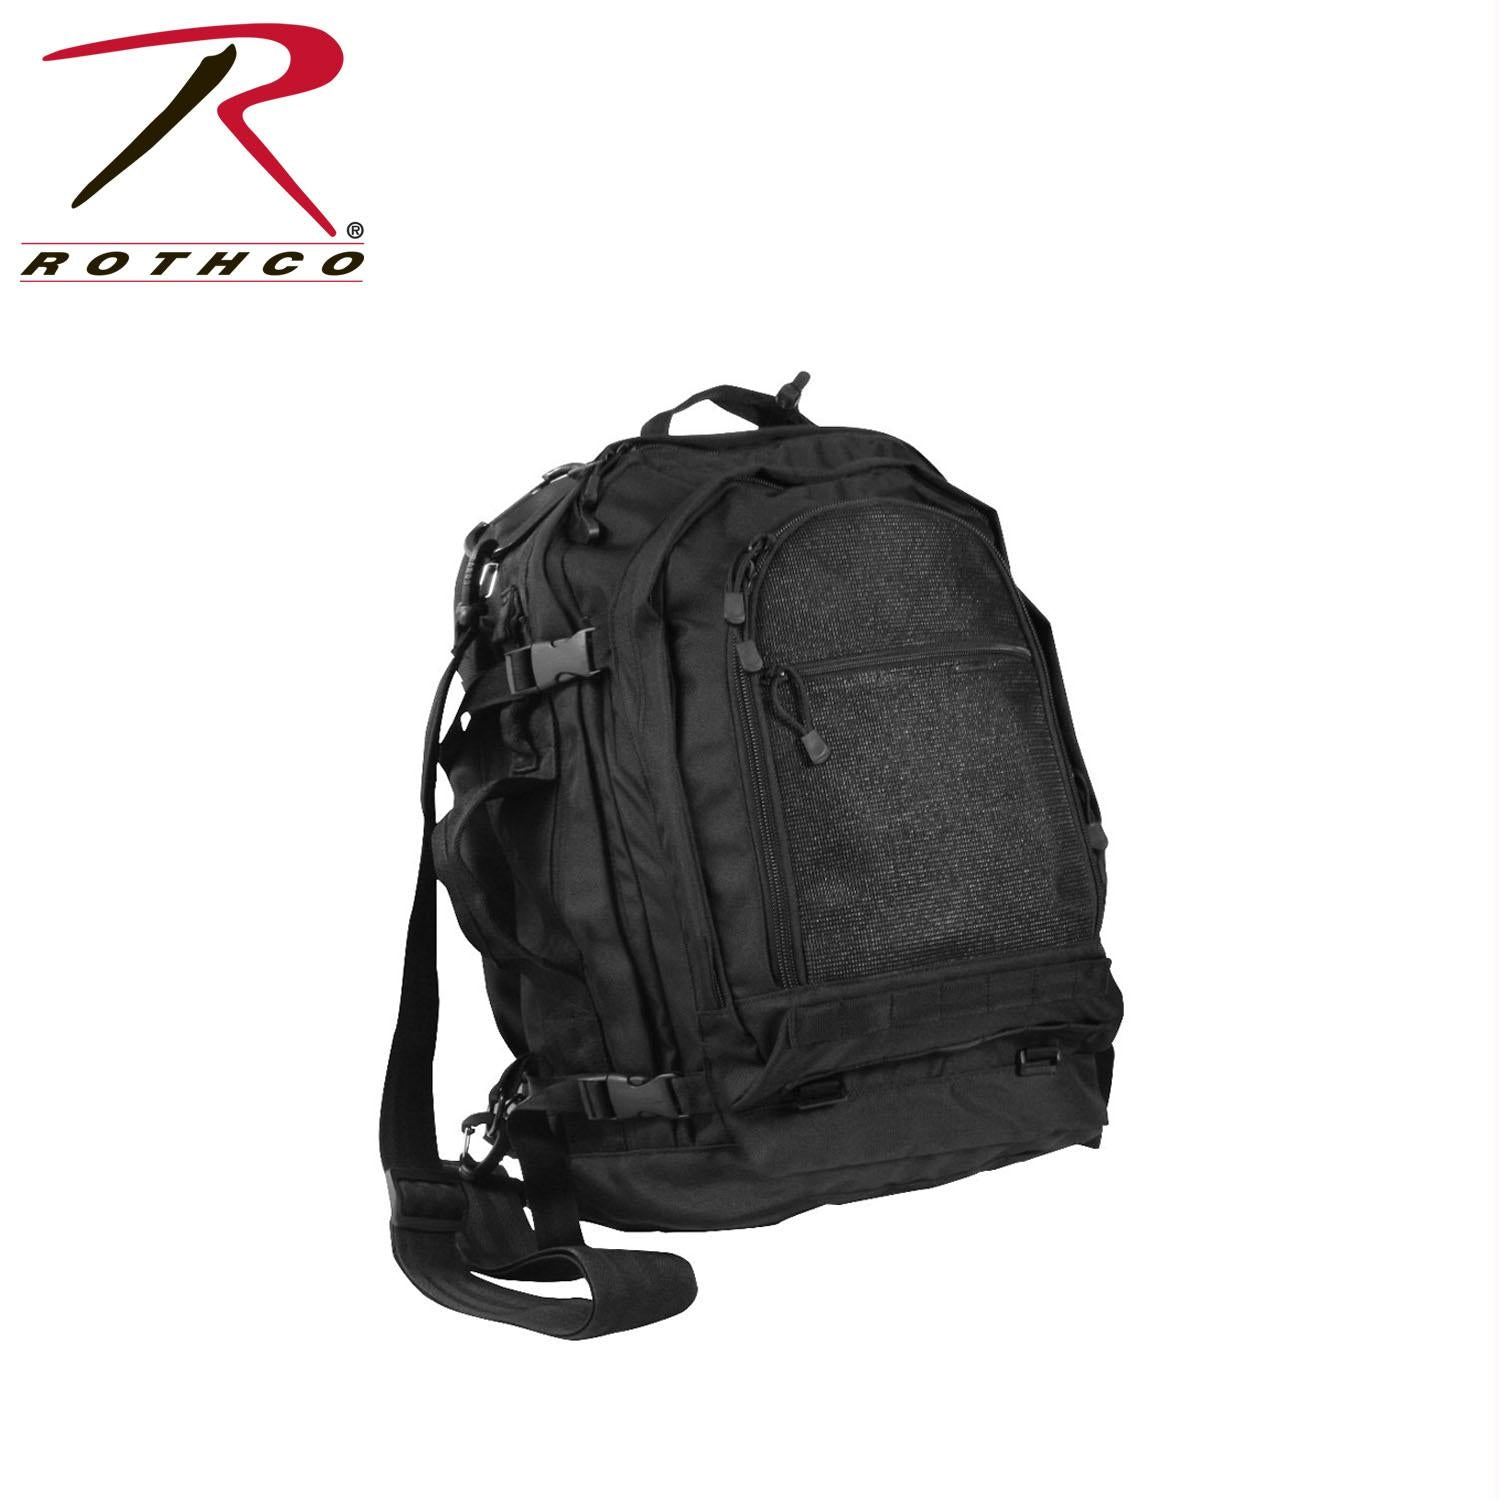 Rothco Move Out Tactical/Travel Backpack - Black